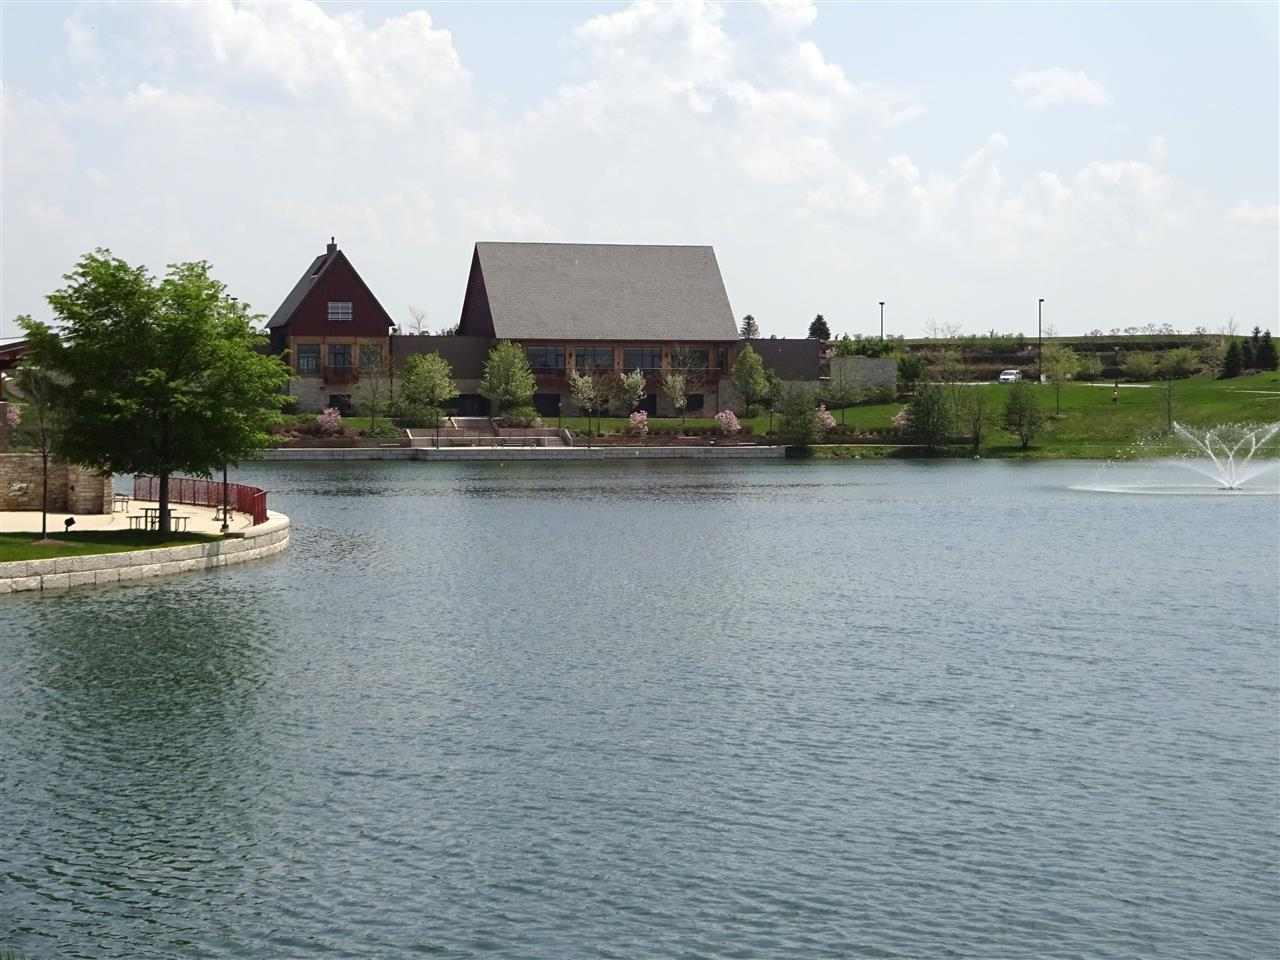 Centennial Park pond and banquet facility located in Munster, Indiana